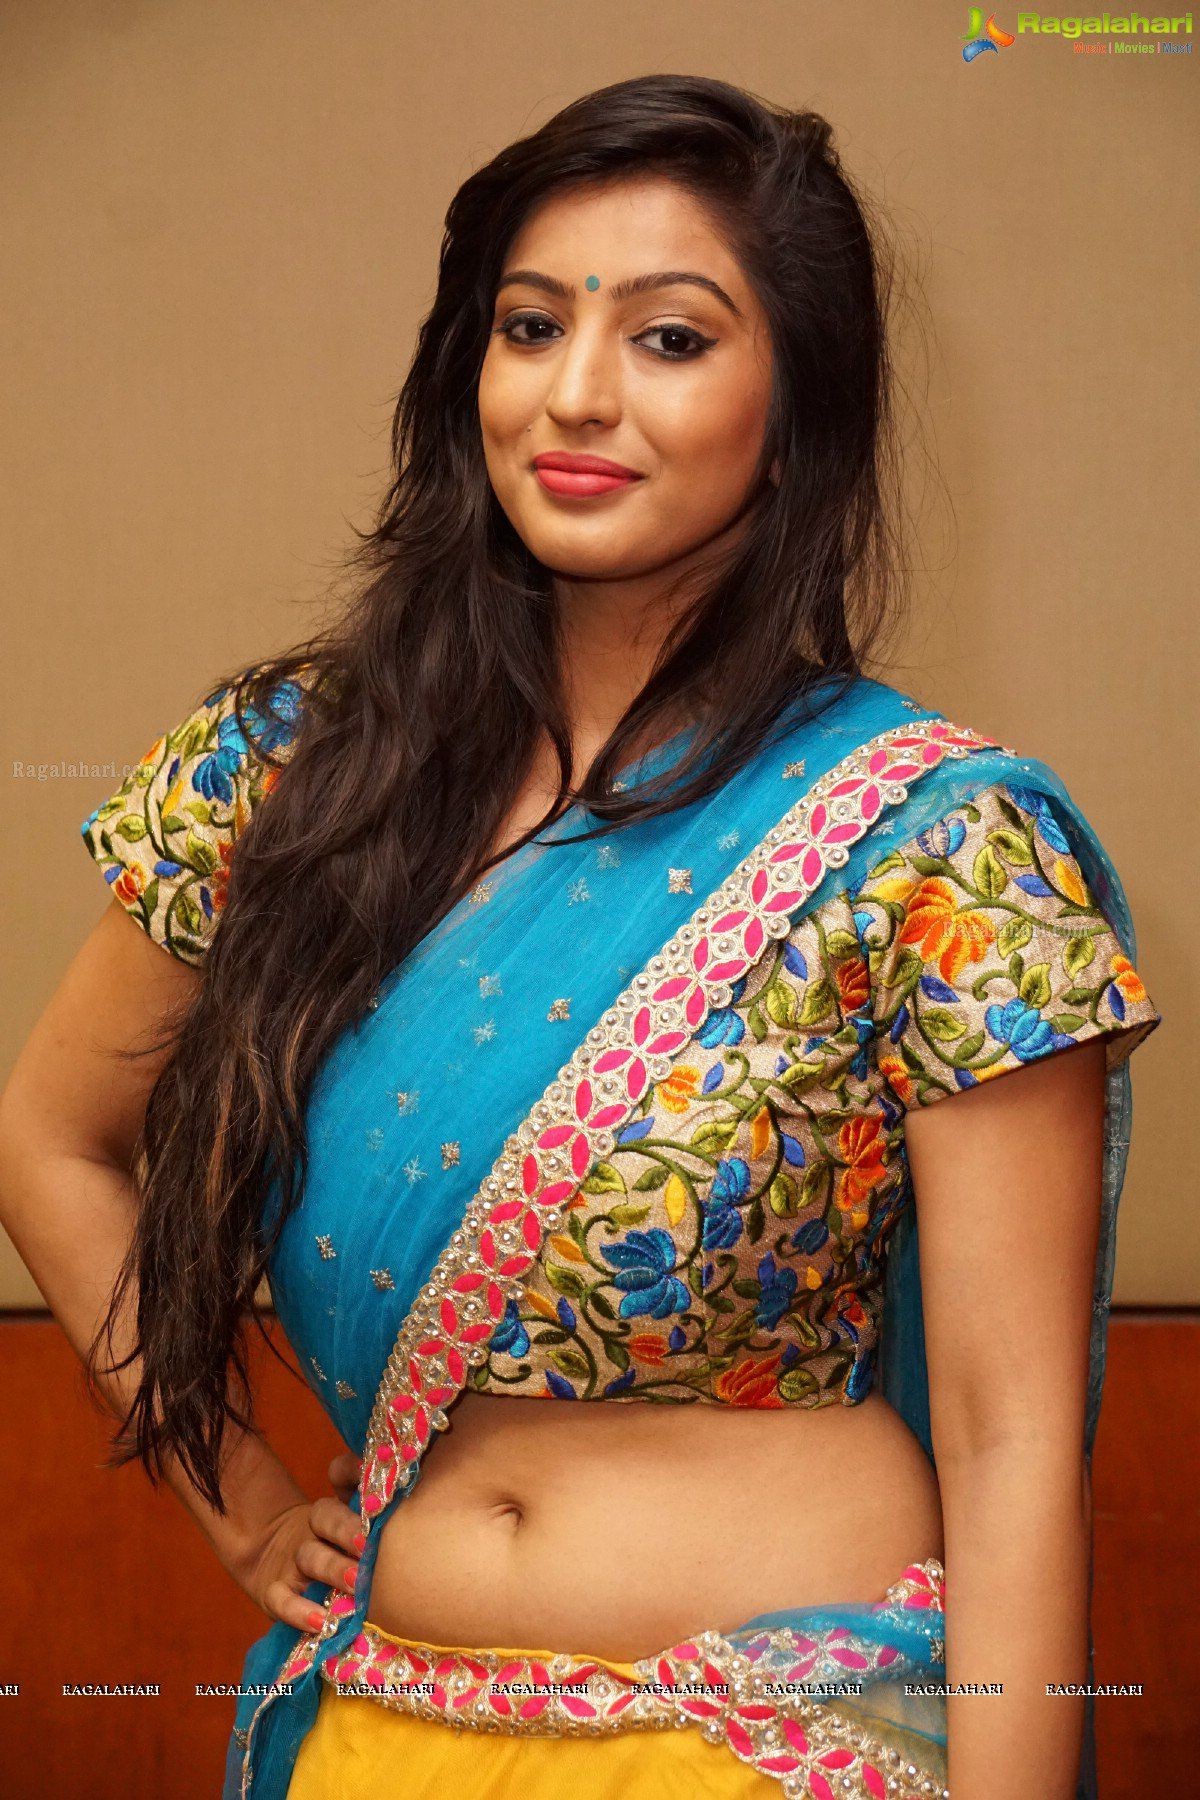 Image result for Vajra Kavachadhara Govinda ACTRESS HOT